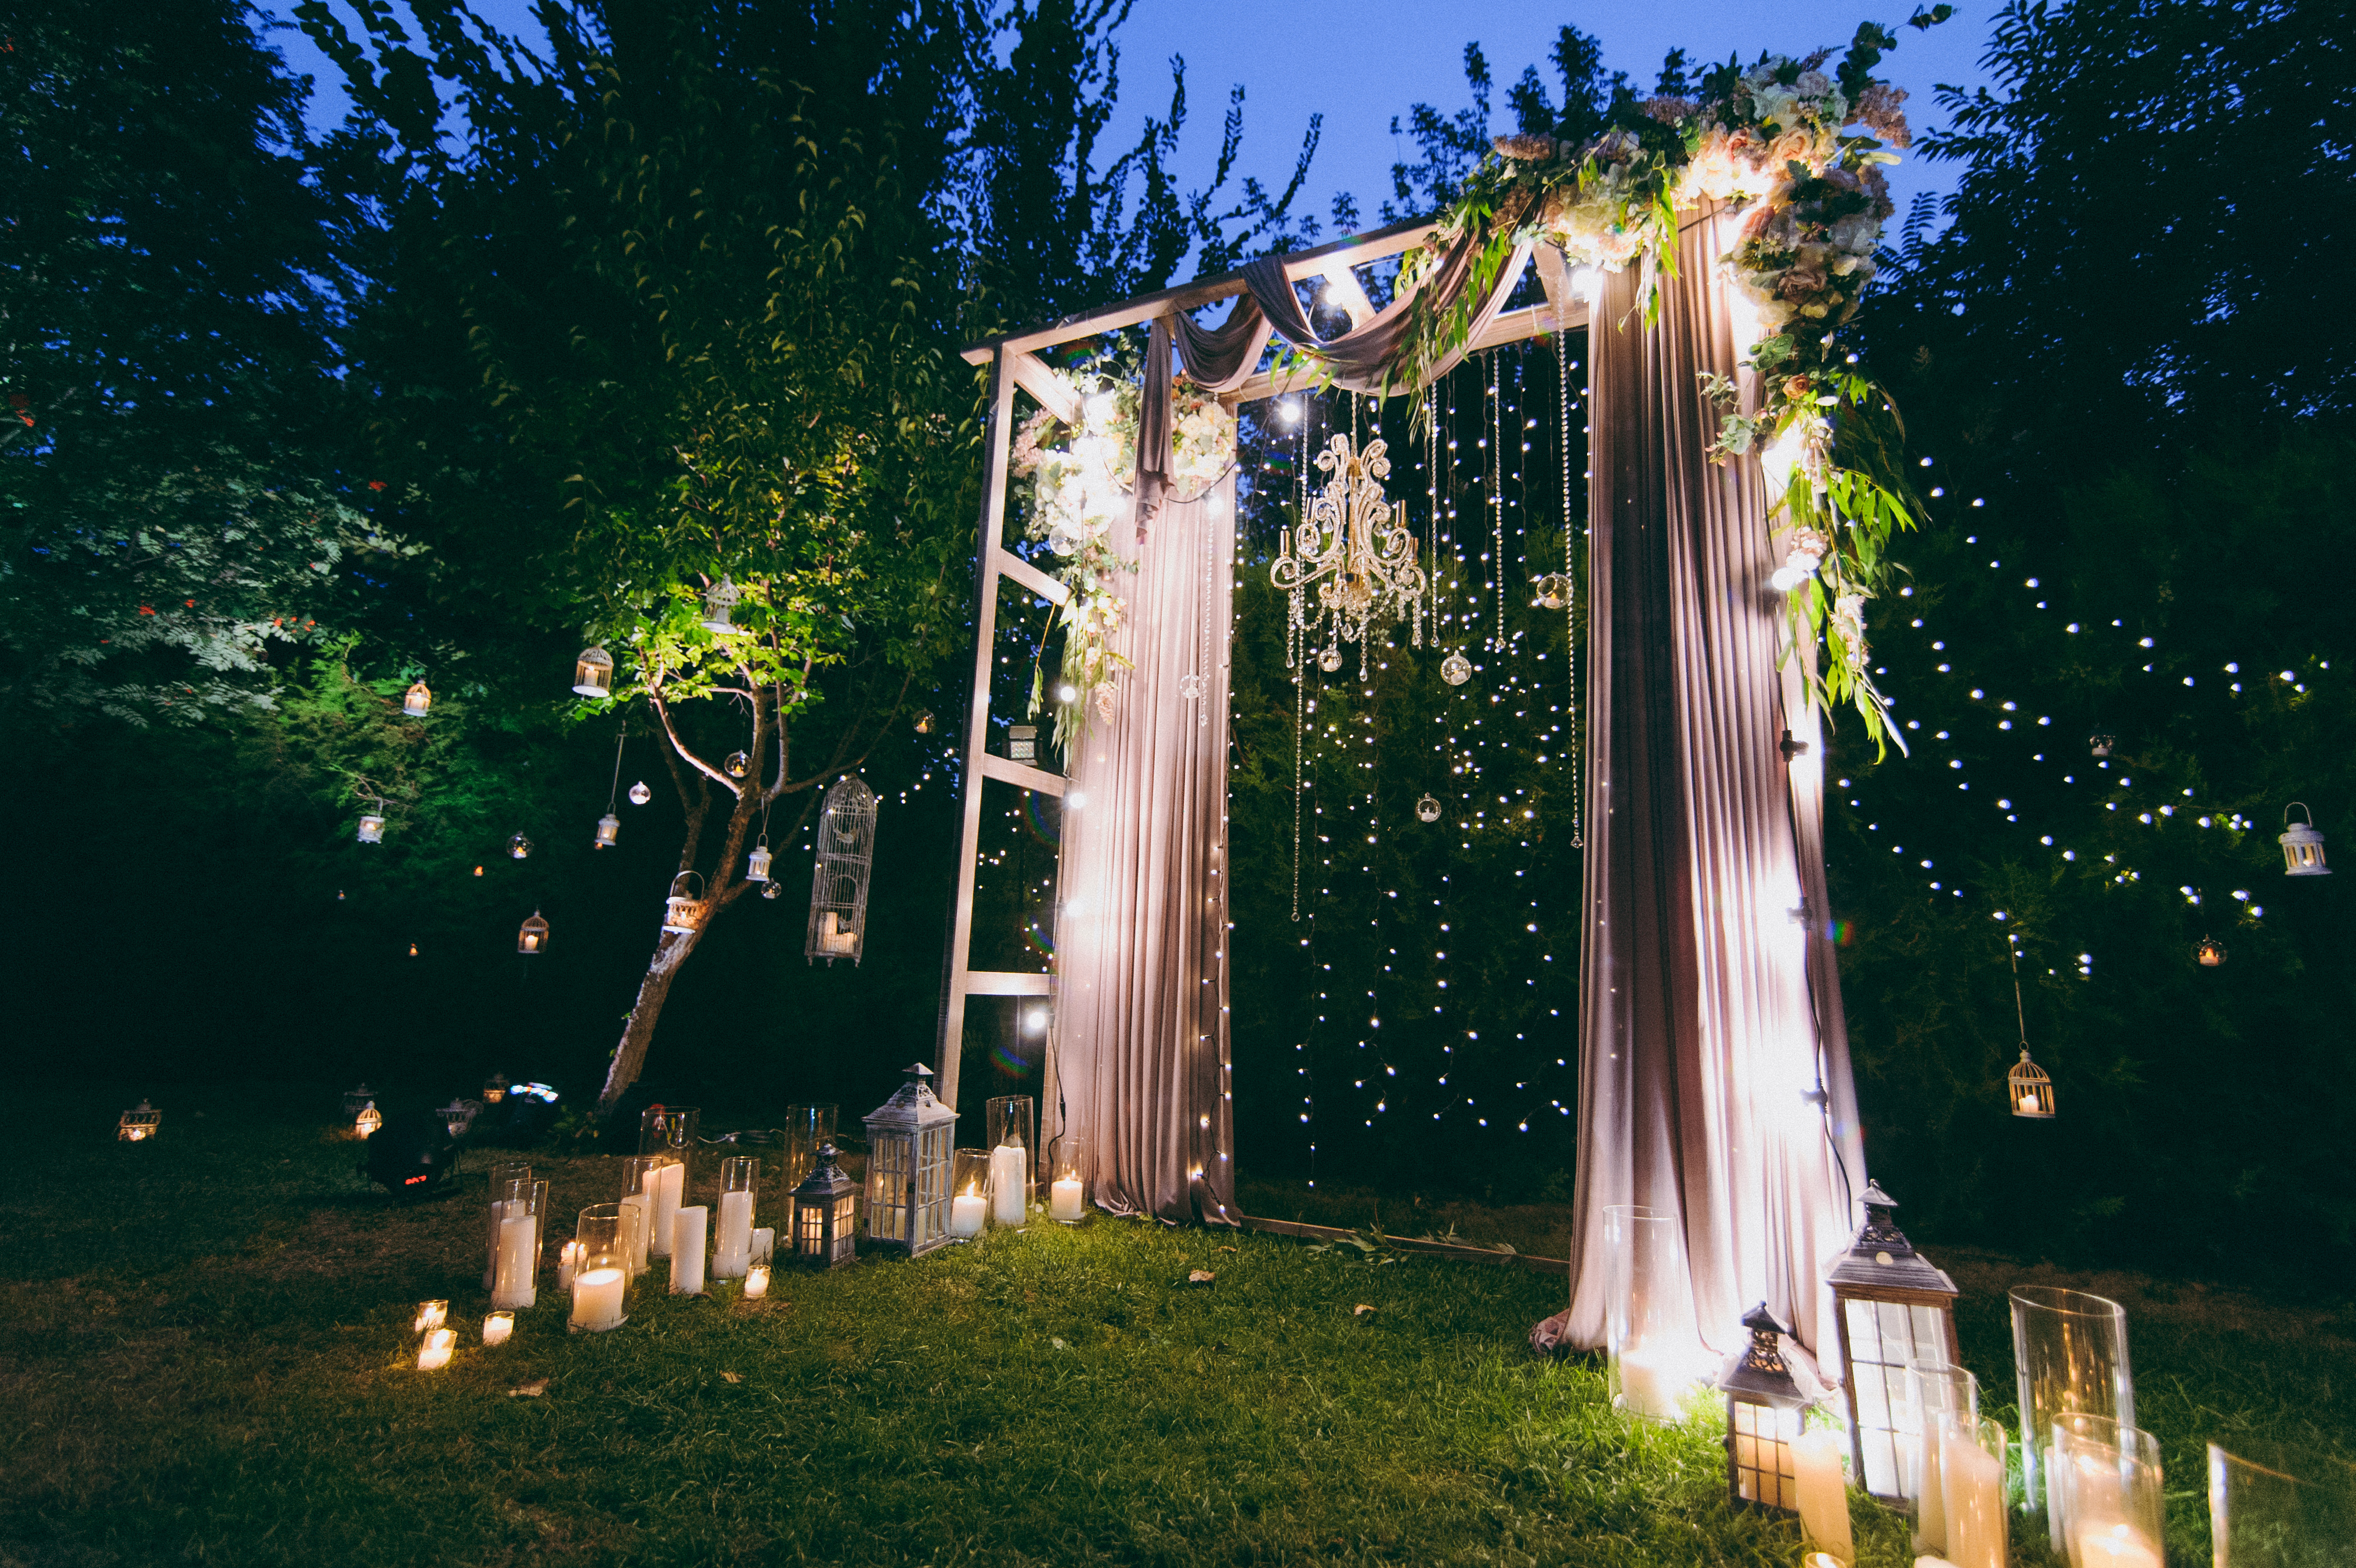 Cristalyne Celebrations- Whimsical Night Ceremony Setup